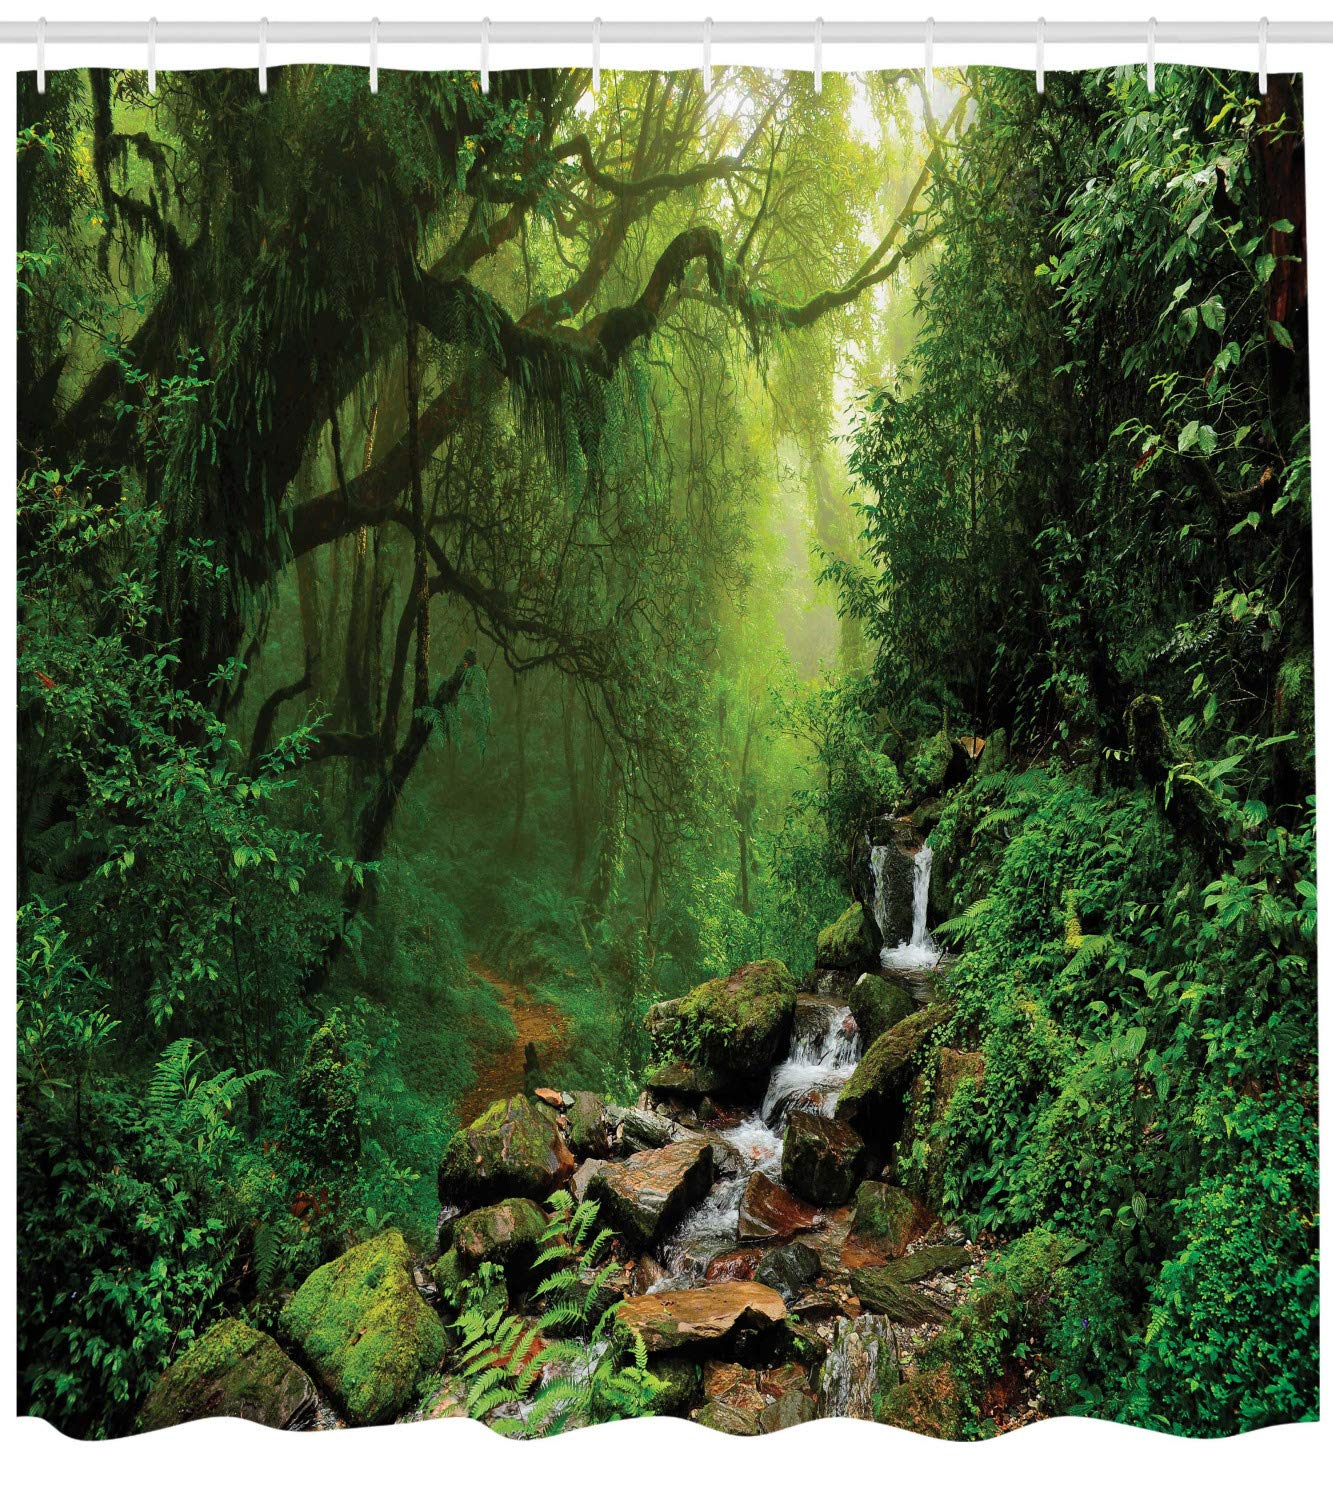 Ambesonne Rainforest Shower Curtain, Forest in Nepal Footpath Wildlife Spring Plant and Stones Moisture Water Print, Cloth Fabric Bathroom Decor Set with Hooks, 75'' Long, Green Brown by Ambesonne